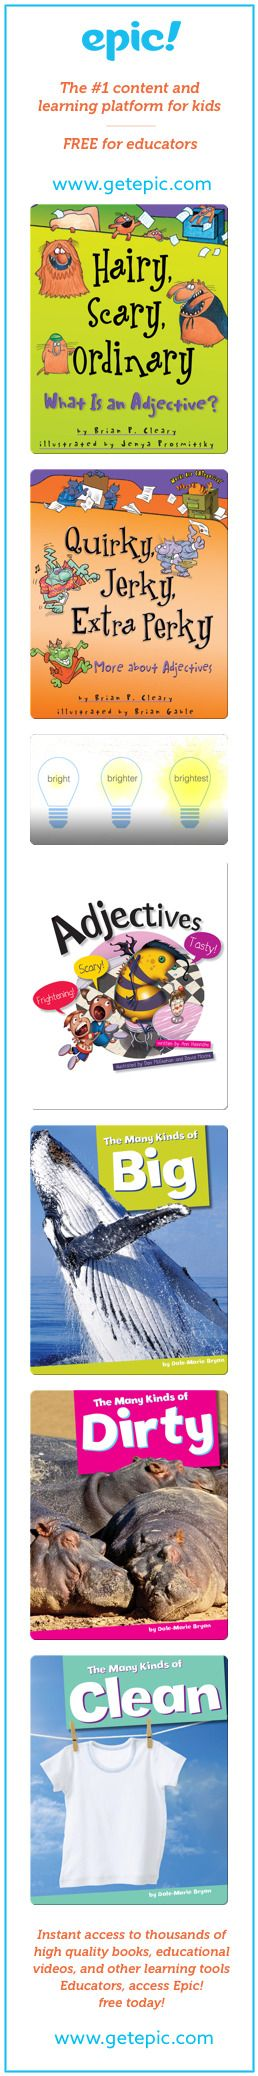 Adjectives - Titles in this collection: Hairy, Scary, Ordinary: What is an Adjective?, Quirky, Jerky, Extra Perky: More about Adjectives, Adjectives, Adjectives...